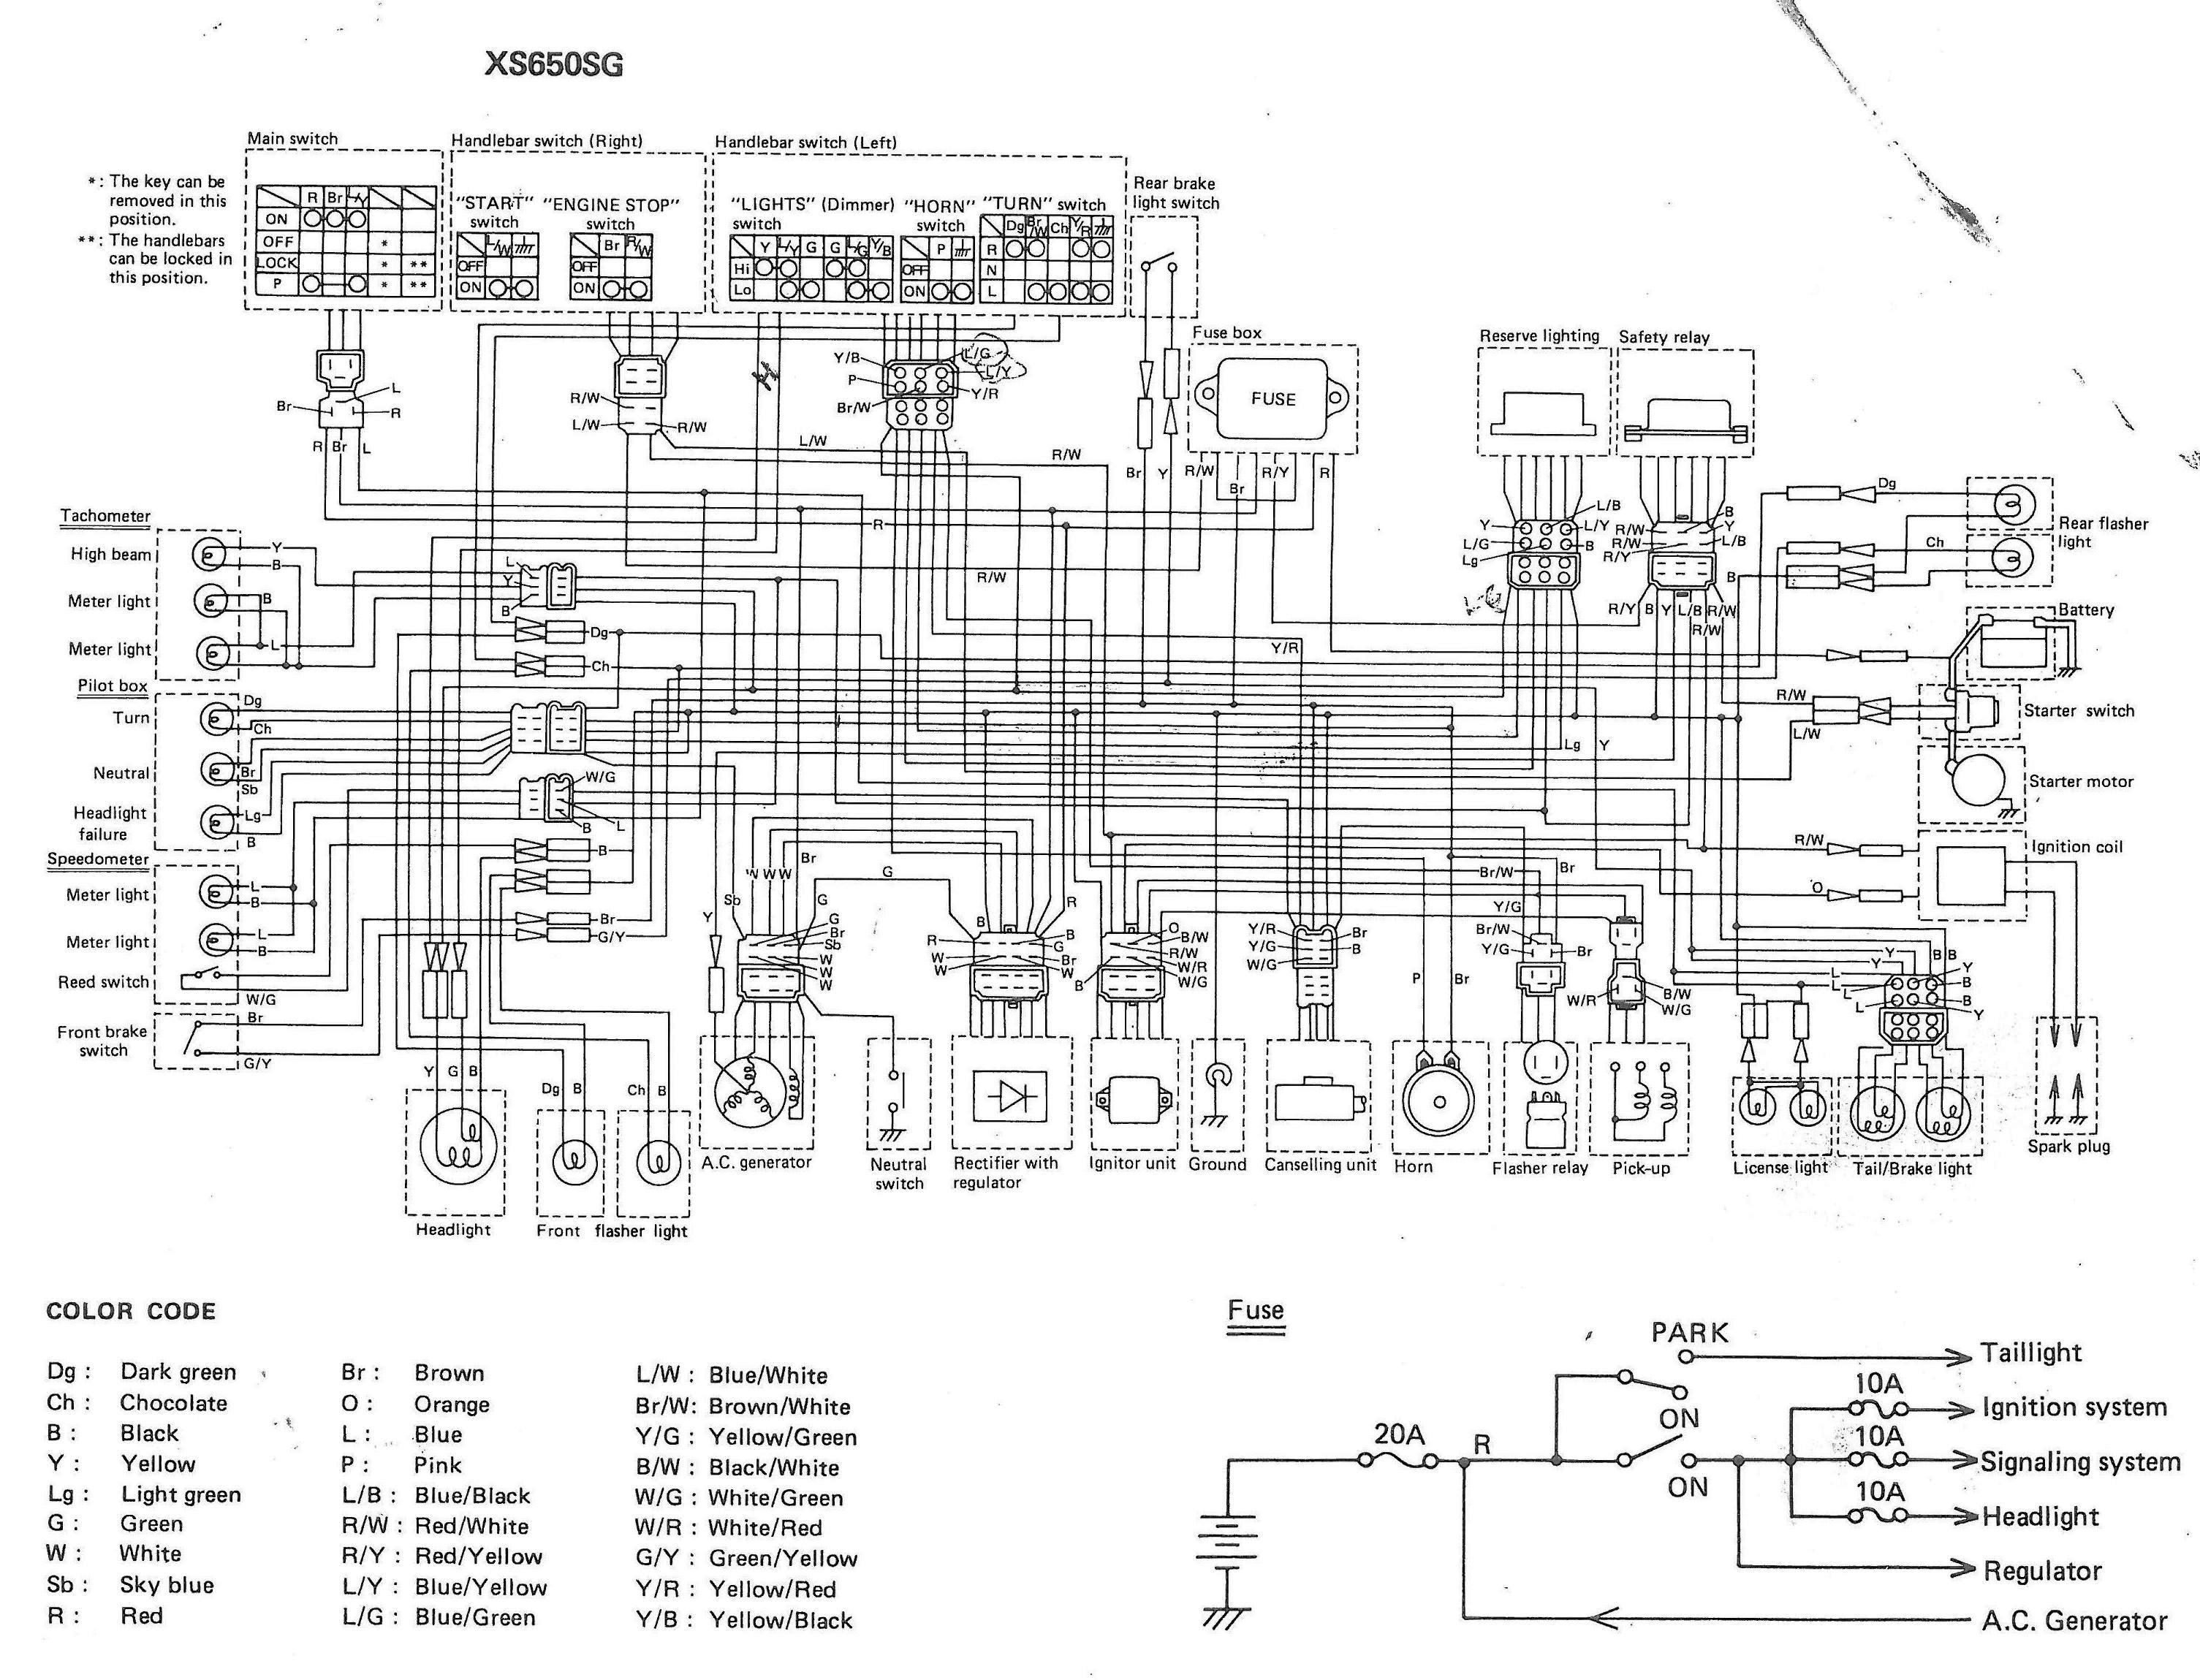 Electrics | thexscafe on it 250 wiring diagram, xs400 wiring diagram, xv920 wiring diagram, virago wiring diagram, xv535 wiring diagram, cb750 wiring diagram, chopper wiring diagram, yz426f wiring diagram, xj650 wiring diagram, fj1100 wiring diagram, xvz1300 wiring diagram, xj550 wiring diagram, fz700 wiring diagram, xj750 wiring diagram, xs850 wiring diagram, xt350 wiring diagram, xs360 wiring diagram, yamaha wiring diagram, xvs650 wiring diagram, xs1100 wiring diagram,